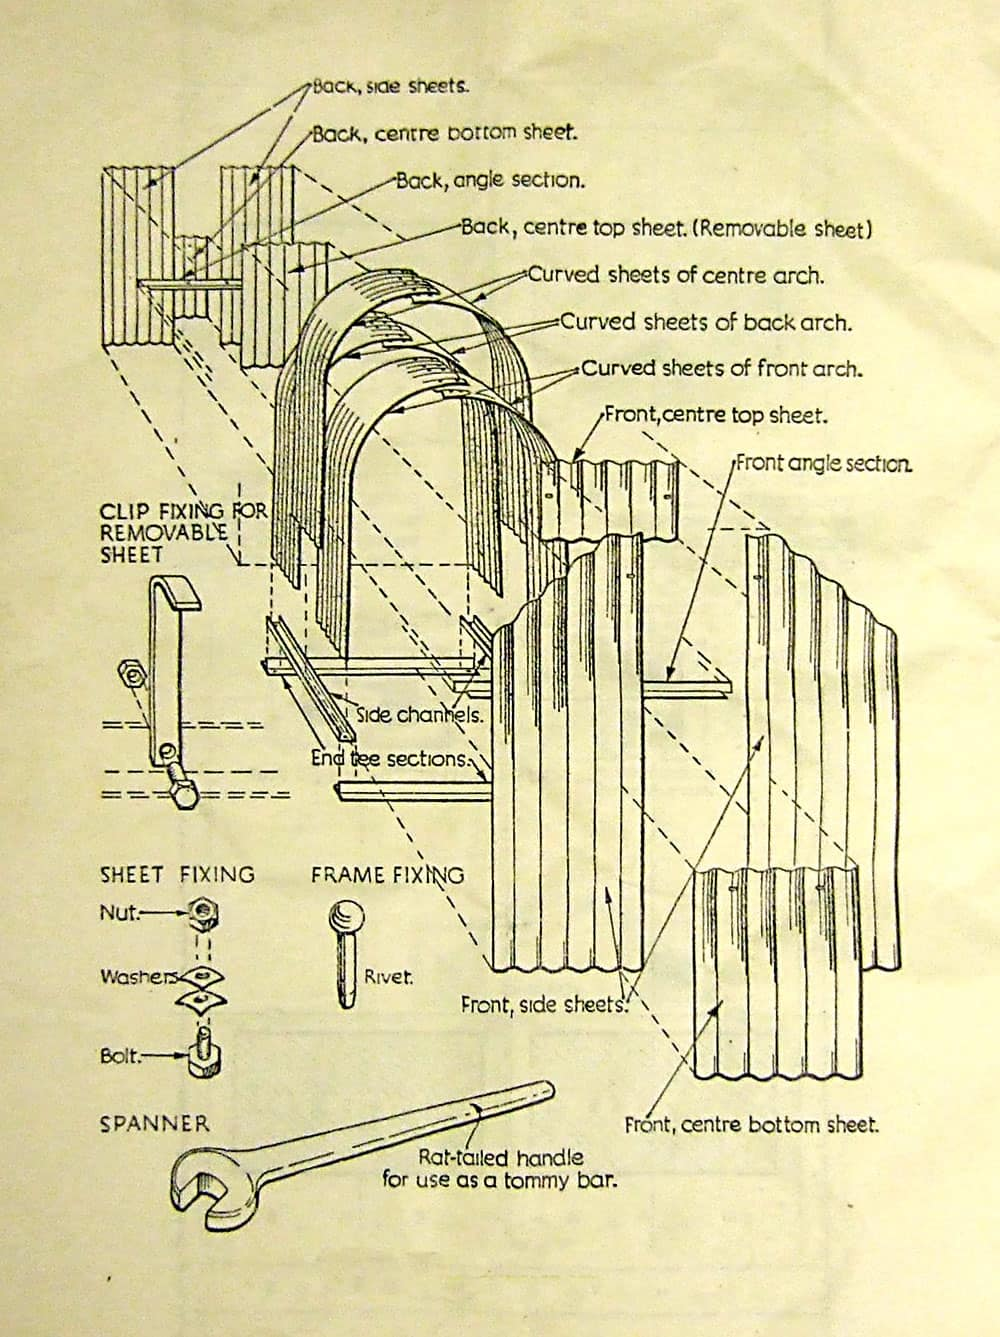 Original assembly instructions for the Anderson shelter.